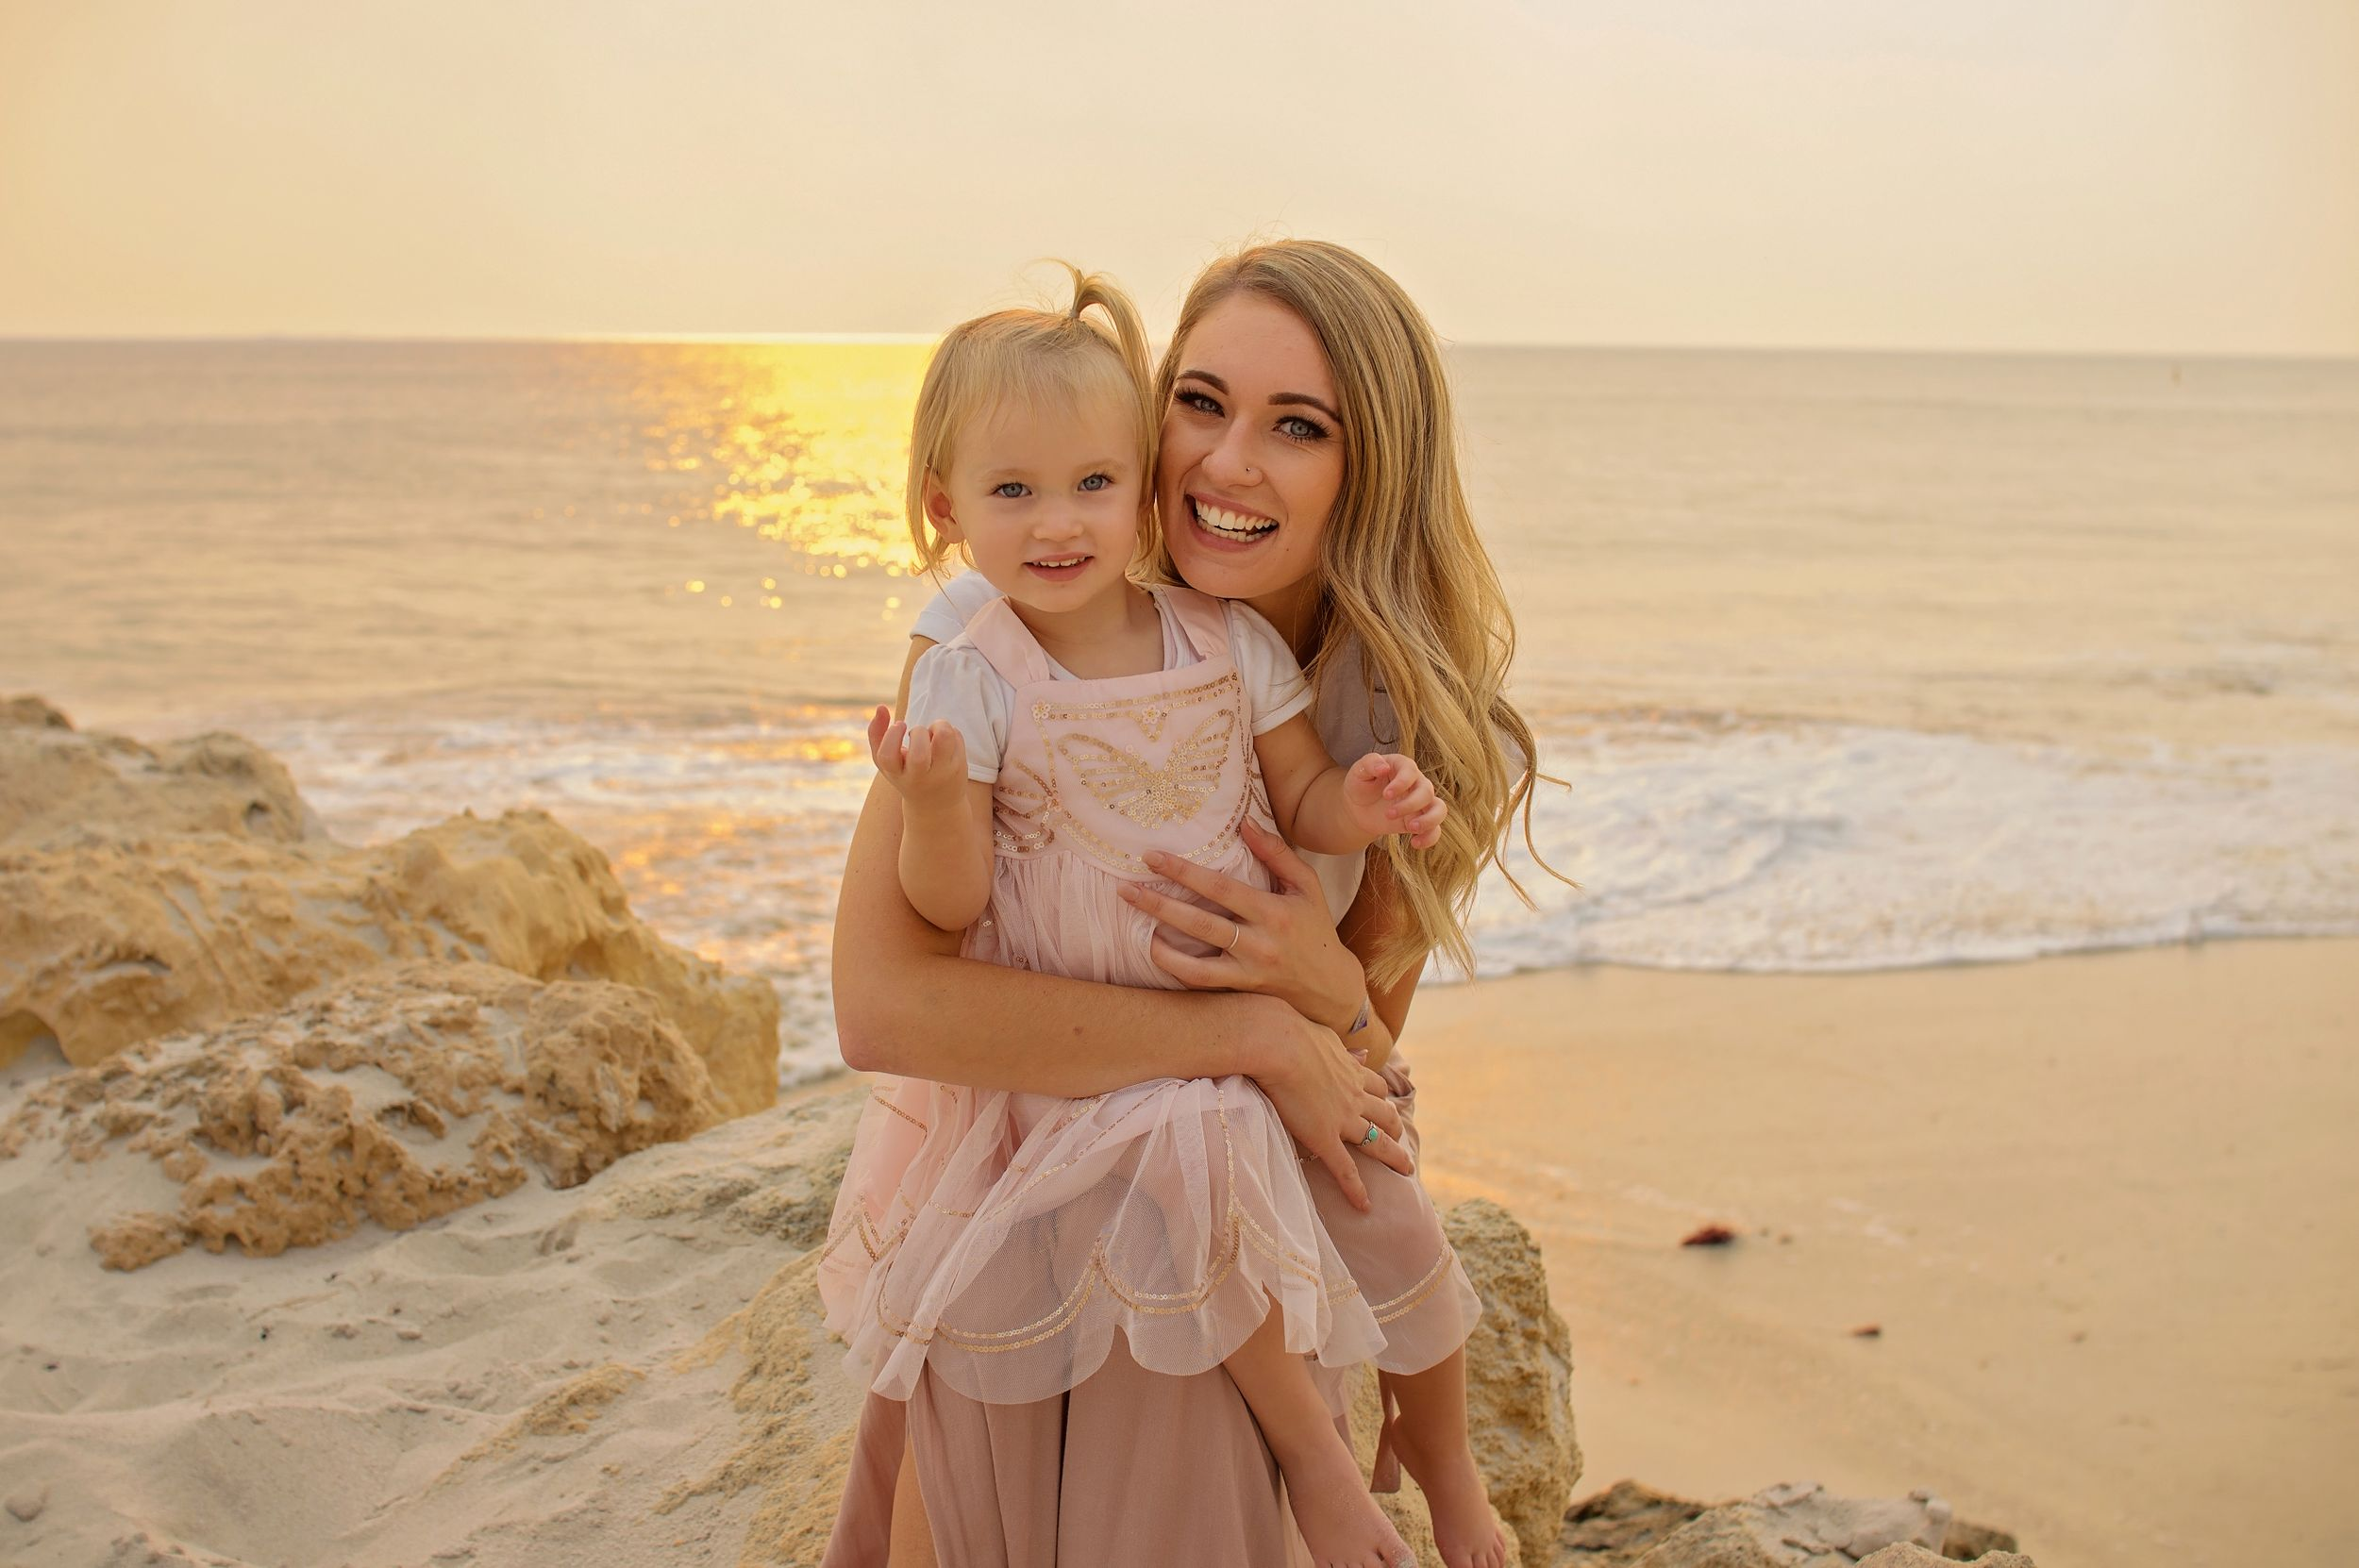 mother holding young daughter on beach smiling with sunset